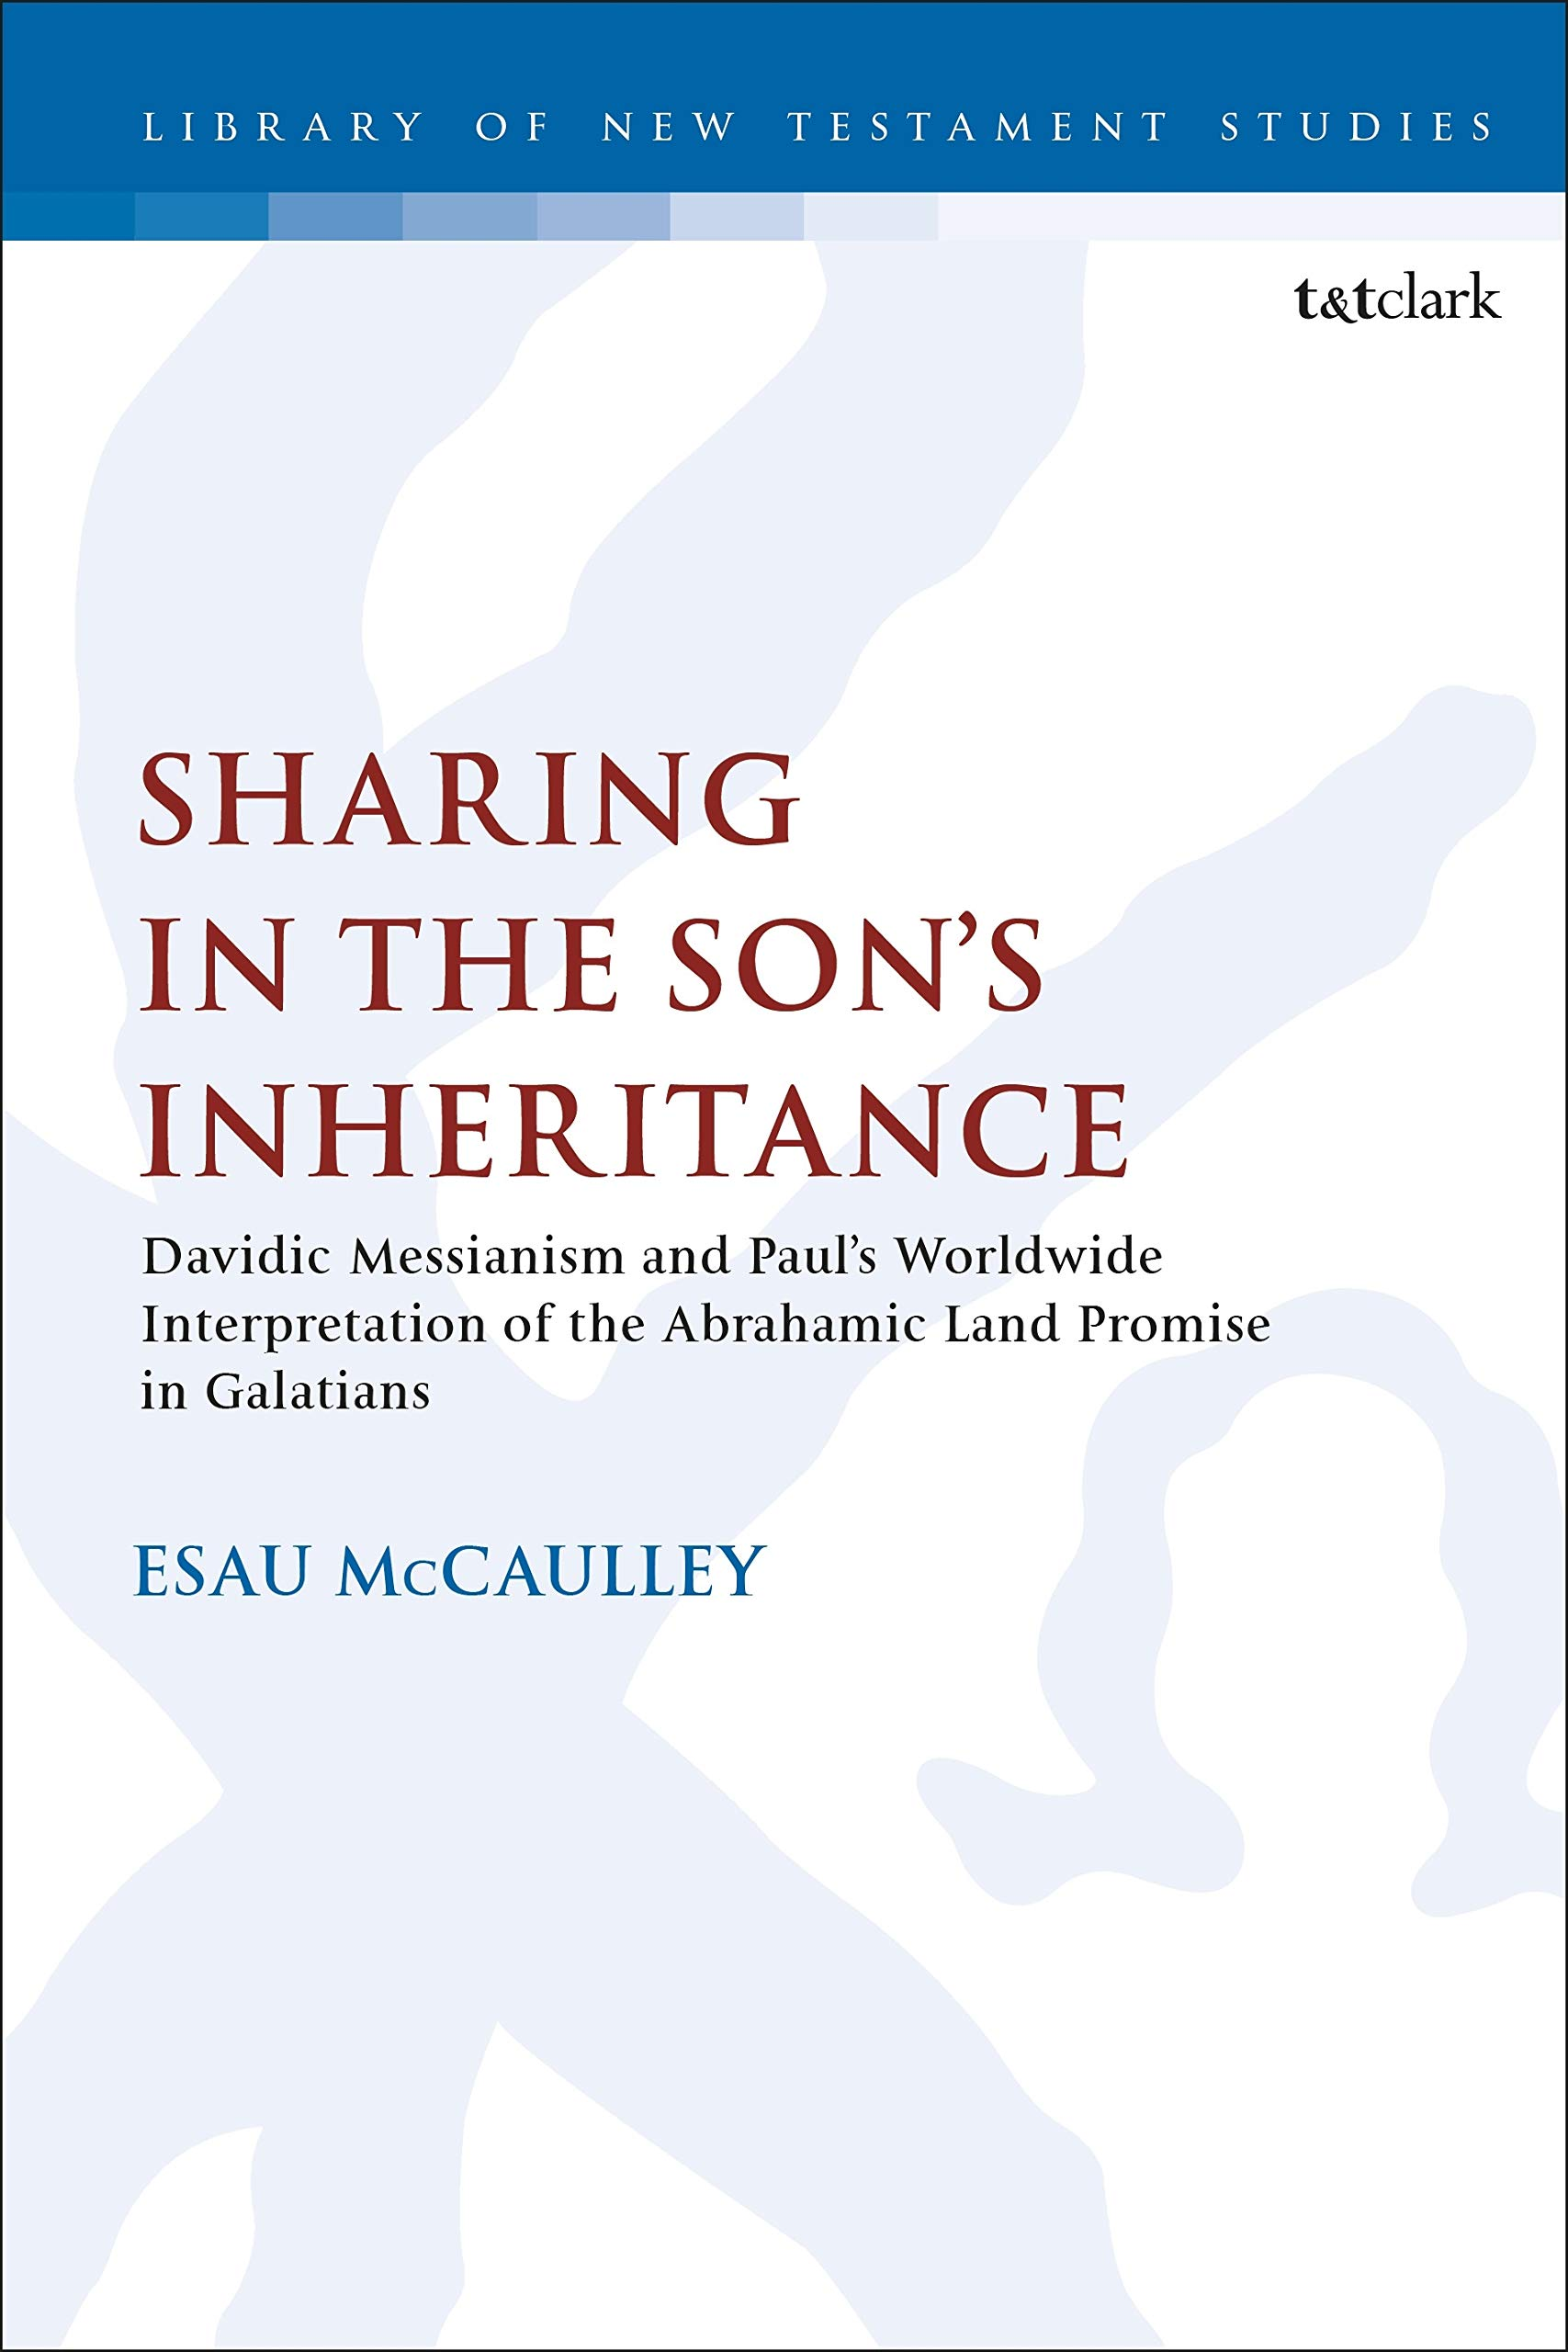 Sharing in the Son's Inheritance: Davidic Messianism and Paul's Worldwide  Interpretation of the Abrahamic Land Promise in Galatians: 608 (The Library  of New Testament Studies): Amazon.co.uk: McCaulley, Rev. Dr. Esau:  9780567685926: Books